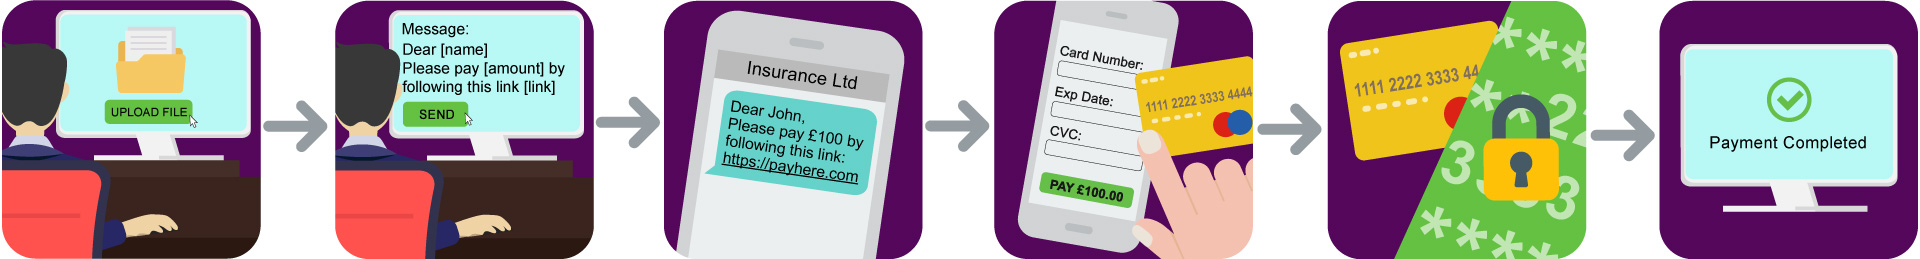 Outbound-Flows—SMS–NEW-UK